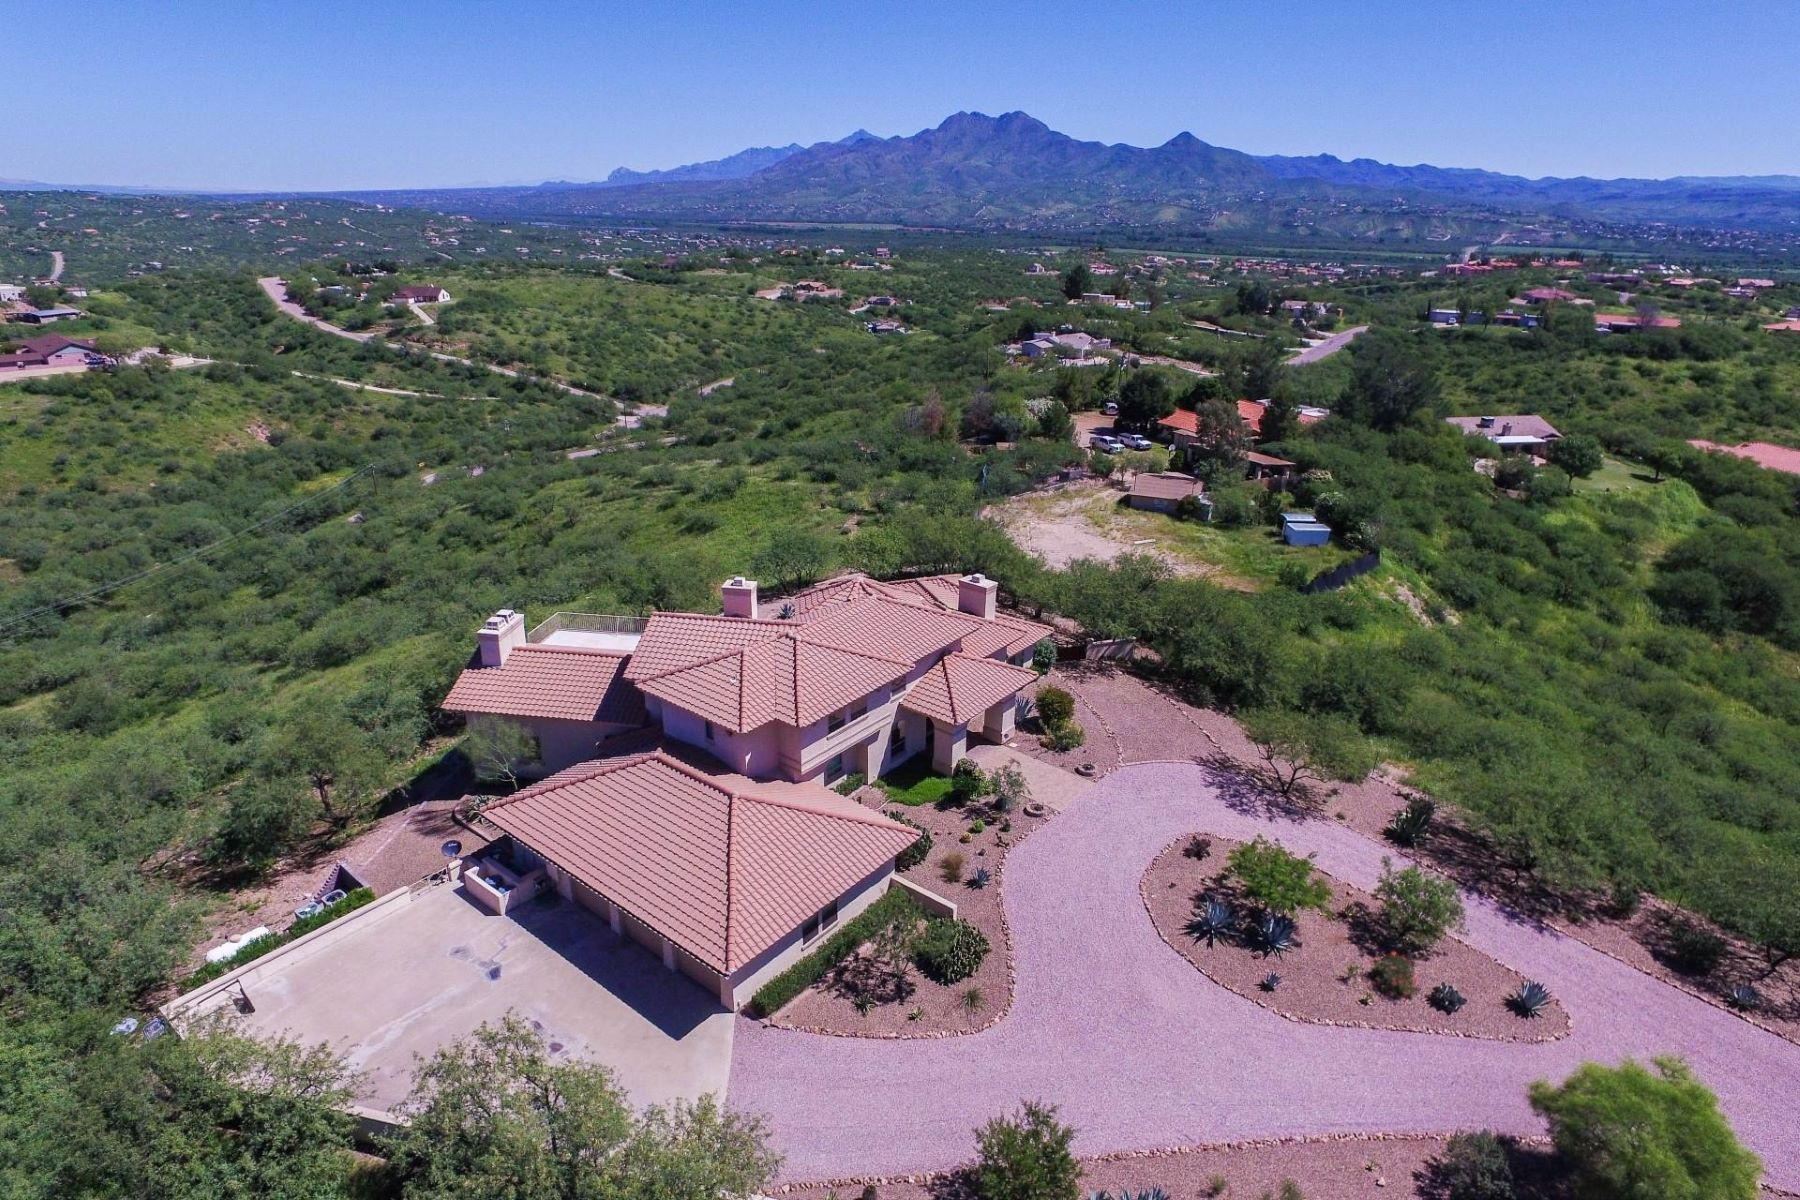 Single Family Home for Sale at Custom Built Mediterranean Style Home 1032 Acaso Ct, Rio Rico, Arizona, 85648 United States